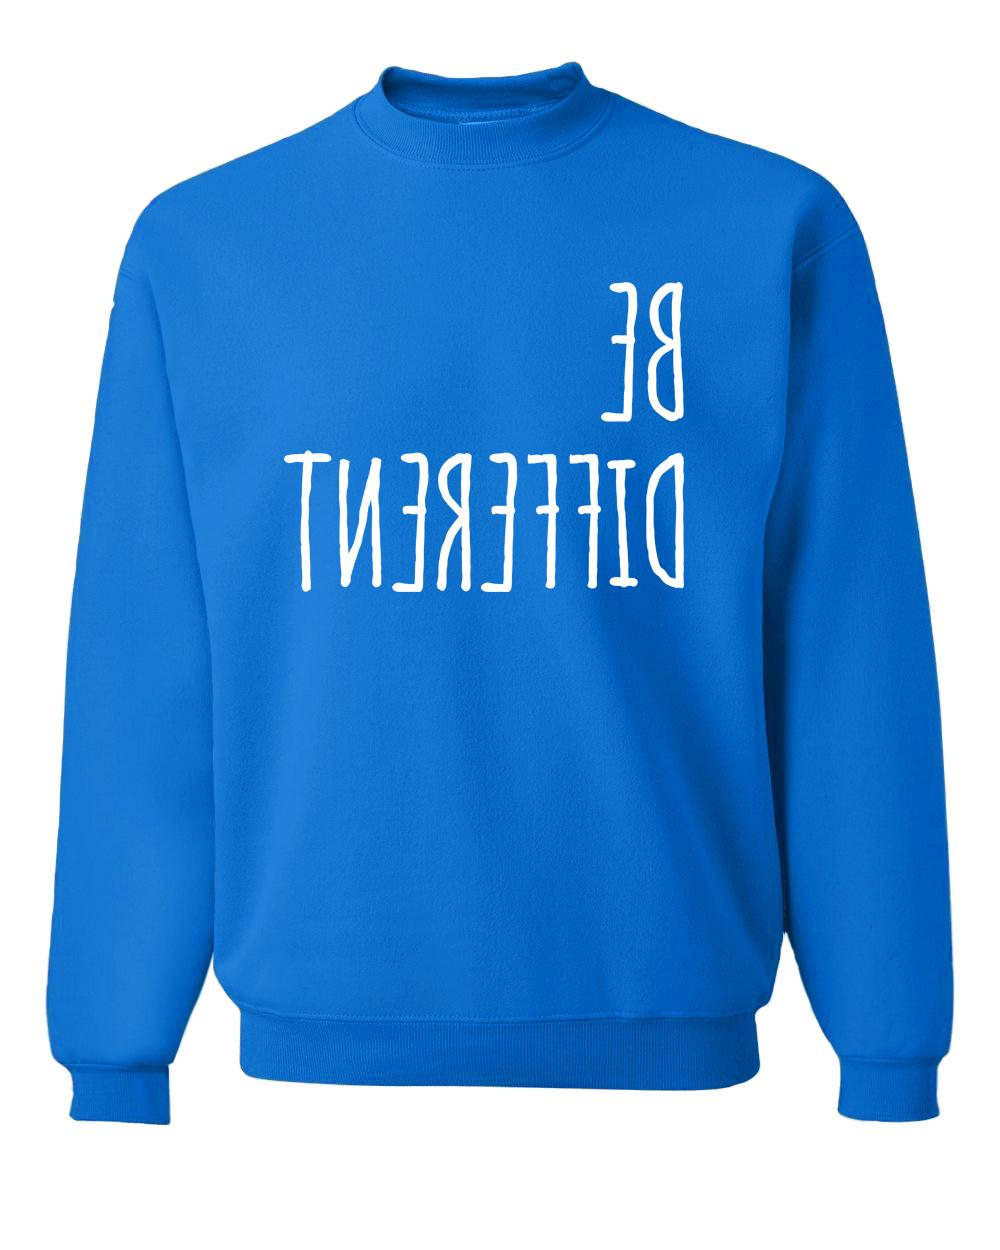 HTB1m5dWPVXXXXX1aXXXq6xXFXXXV - Be Different novelty hoodies men 2019 new style spring winter fashion men sweatshirt hip hop style streetwear brand tracksuit